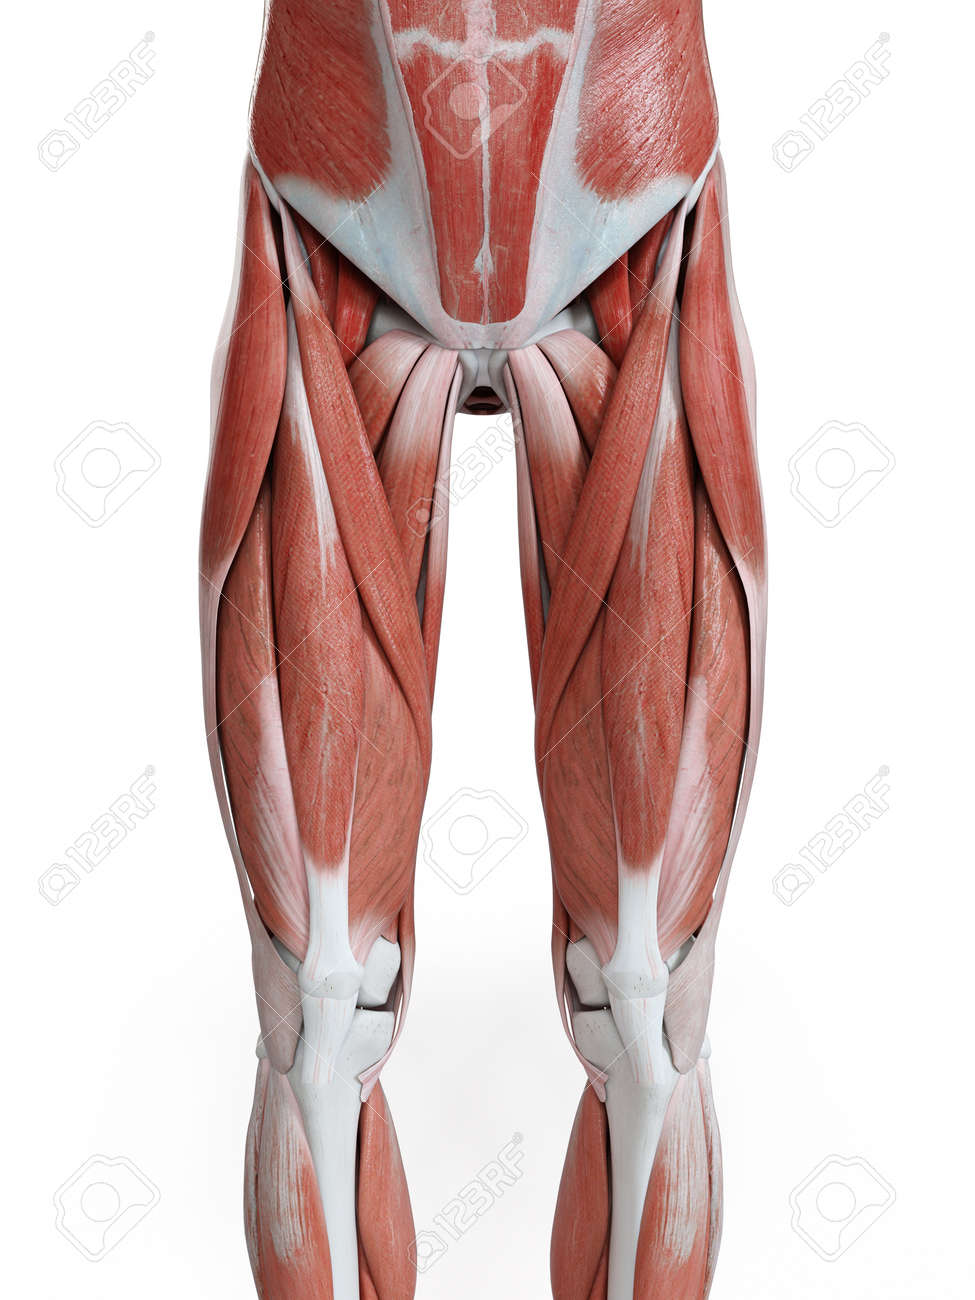 3d rendered medically accurate illustration of the leg muscles - 125248801